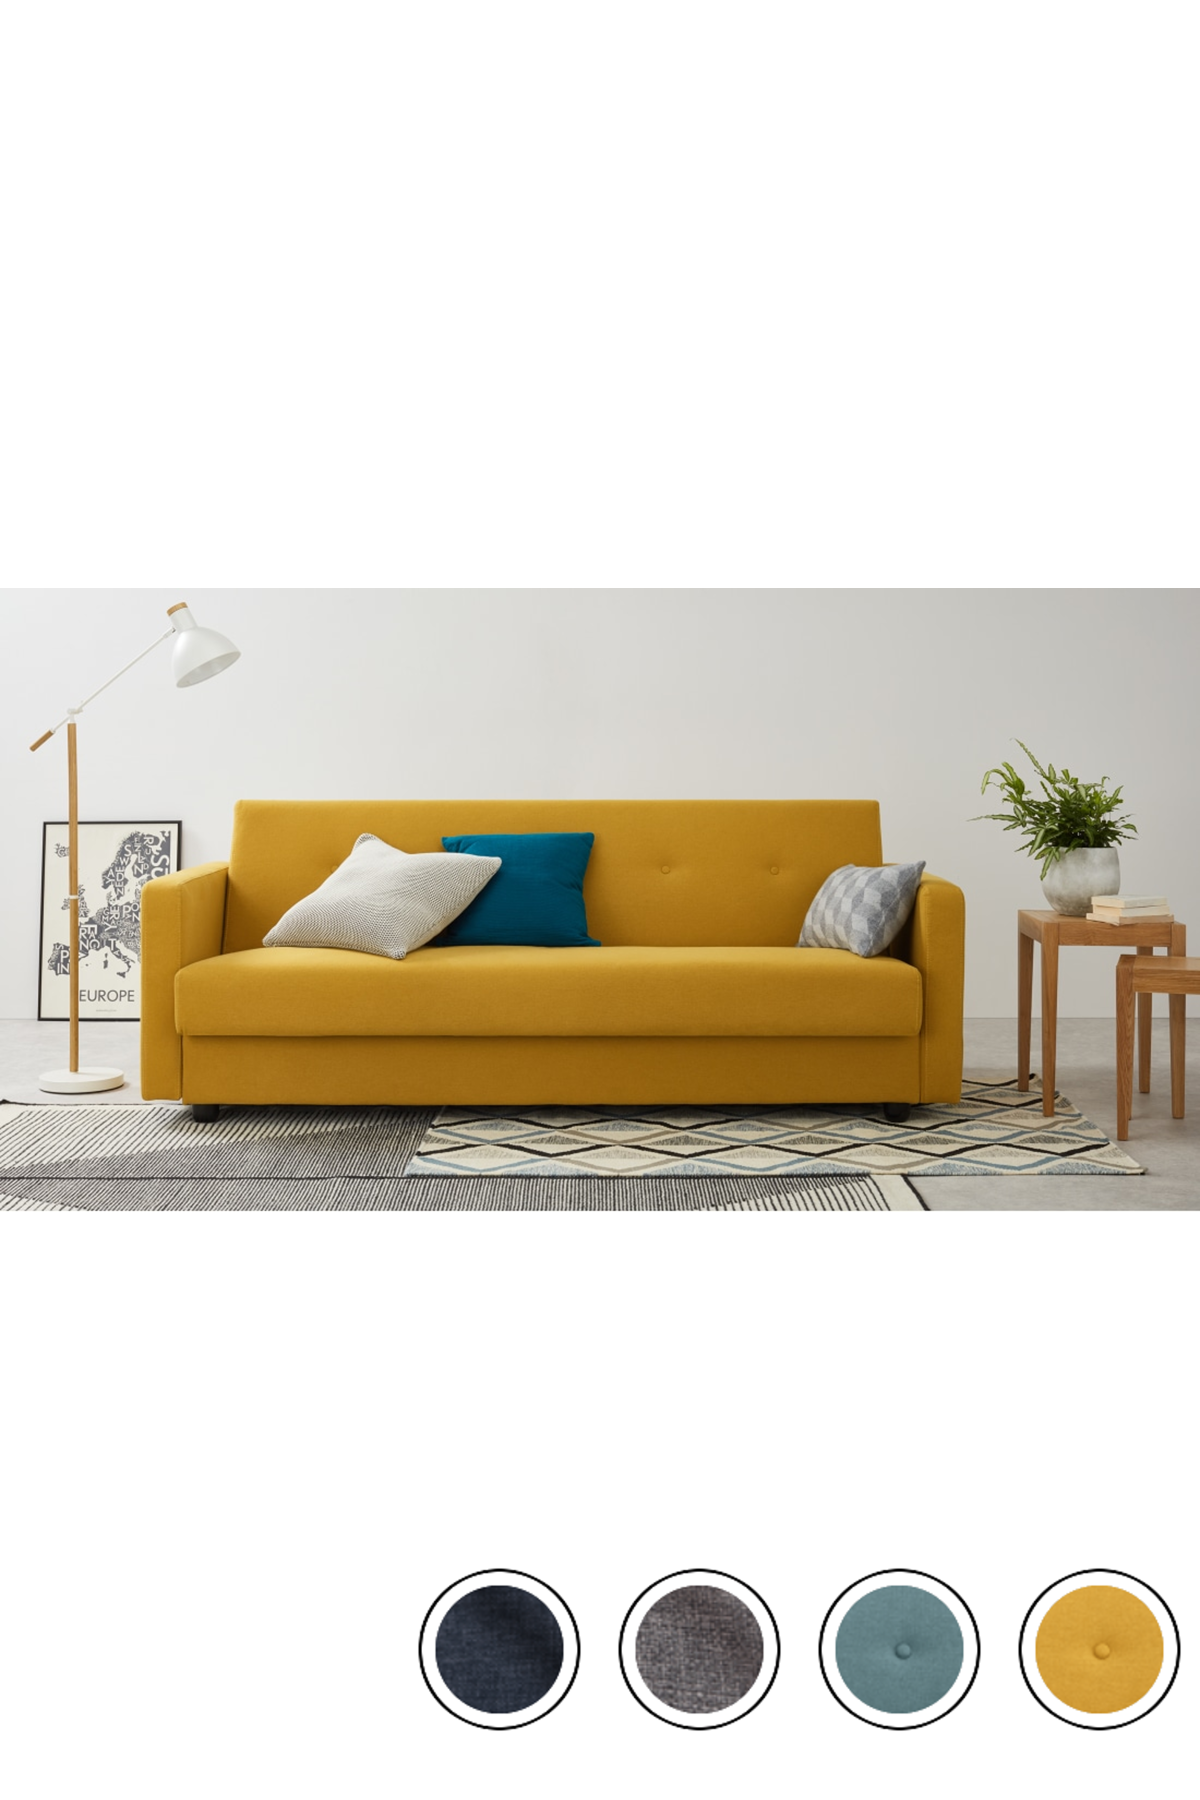 MADE butter yellow Sofa bed Sofa bed with storage, Sofa